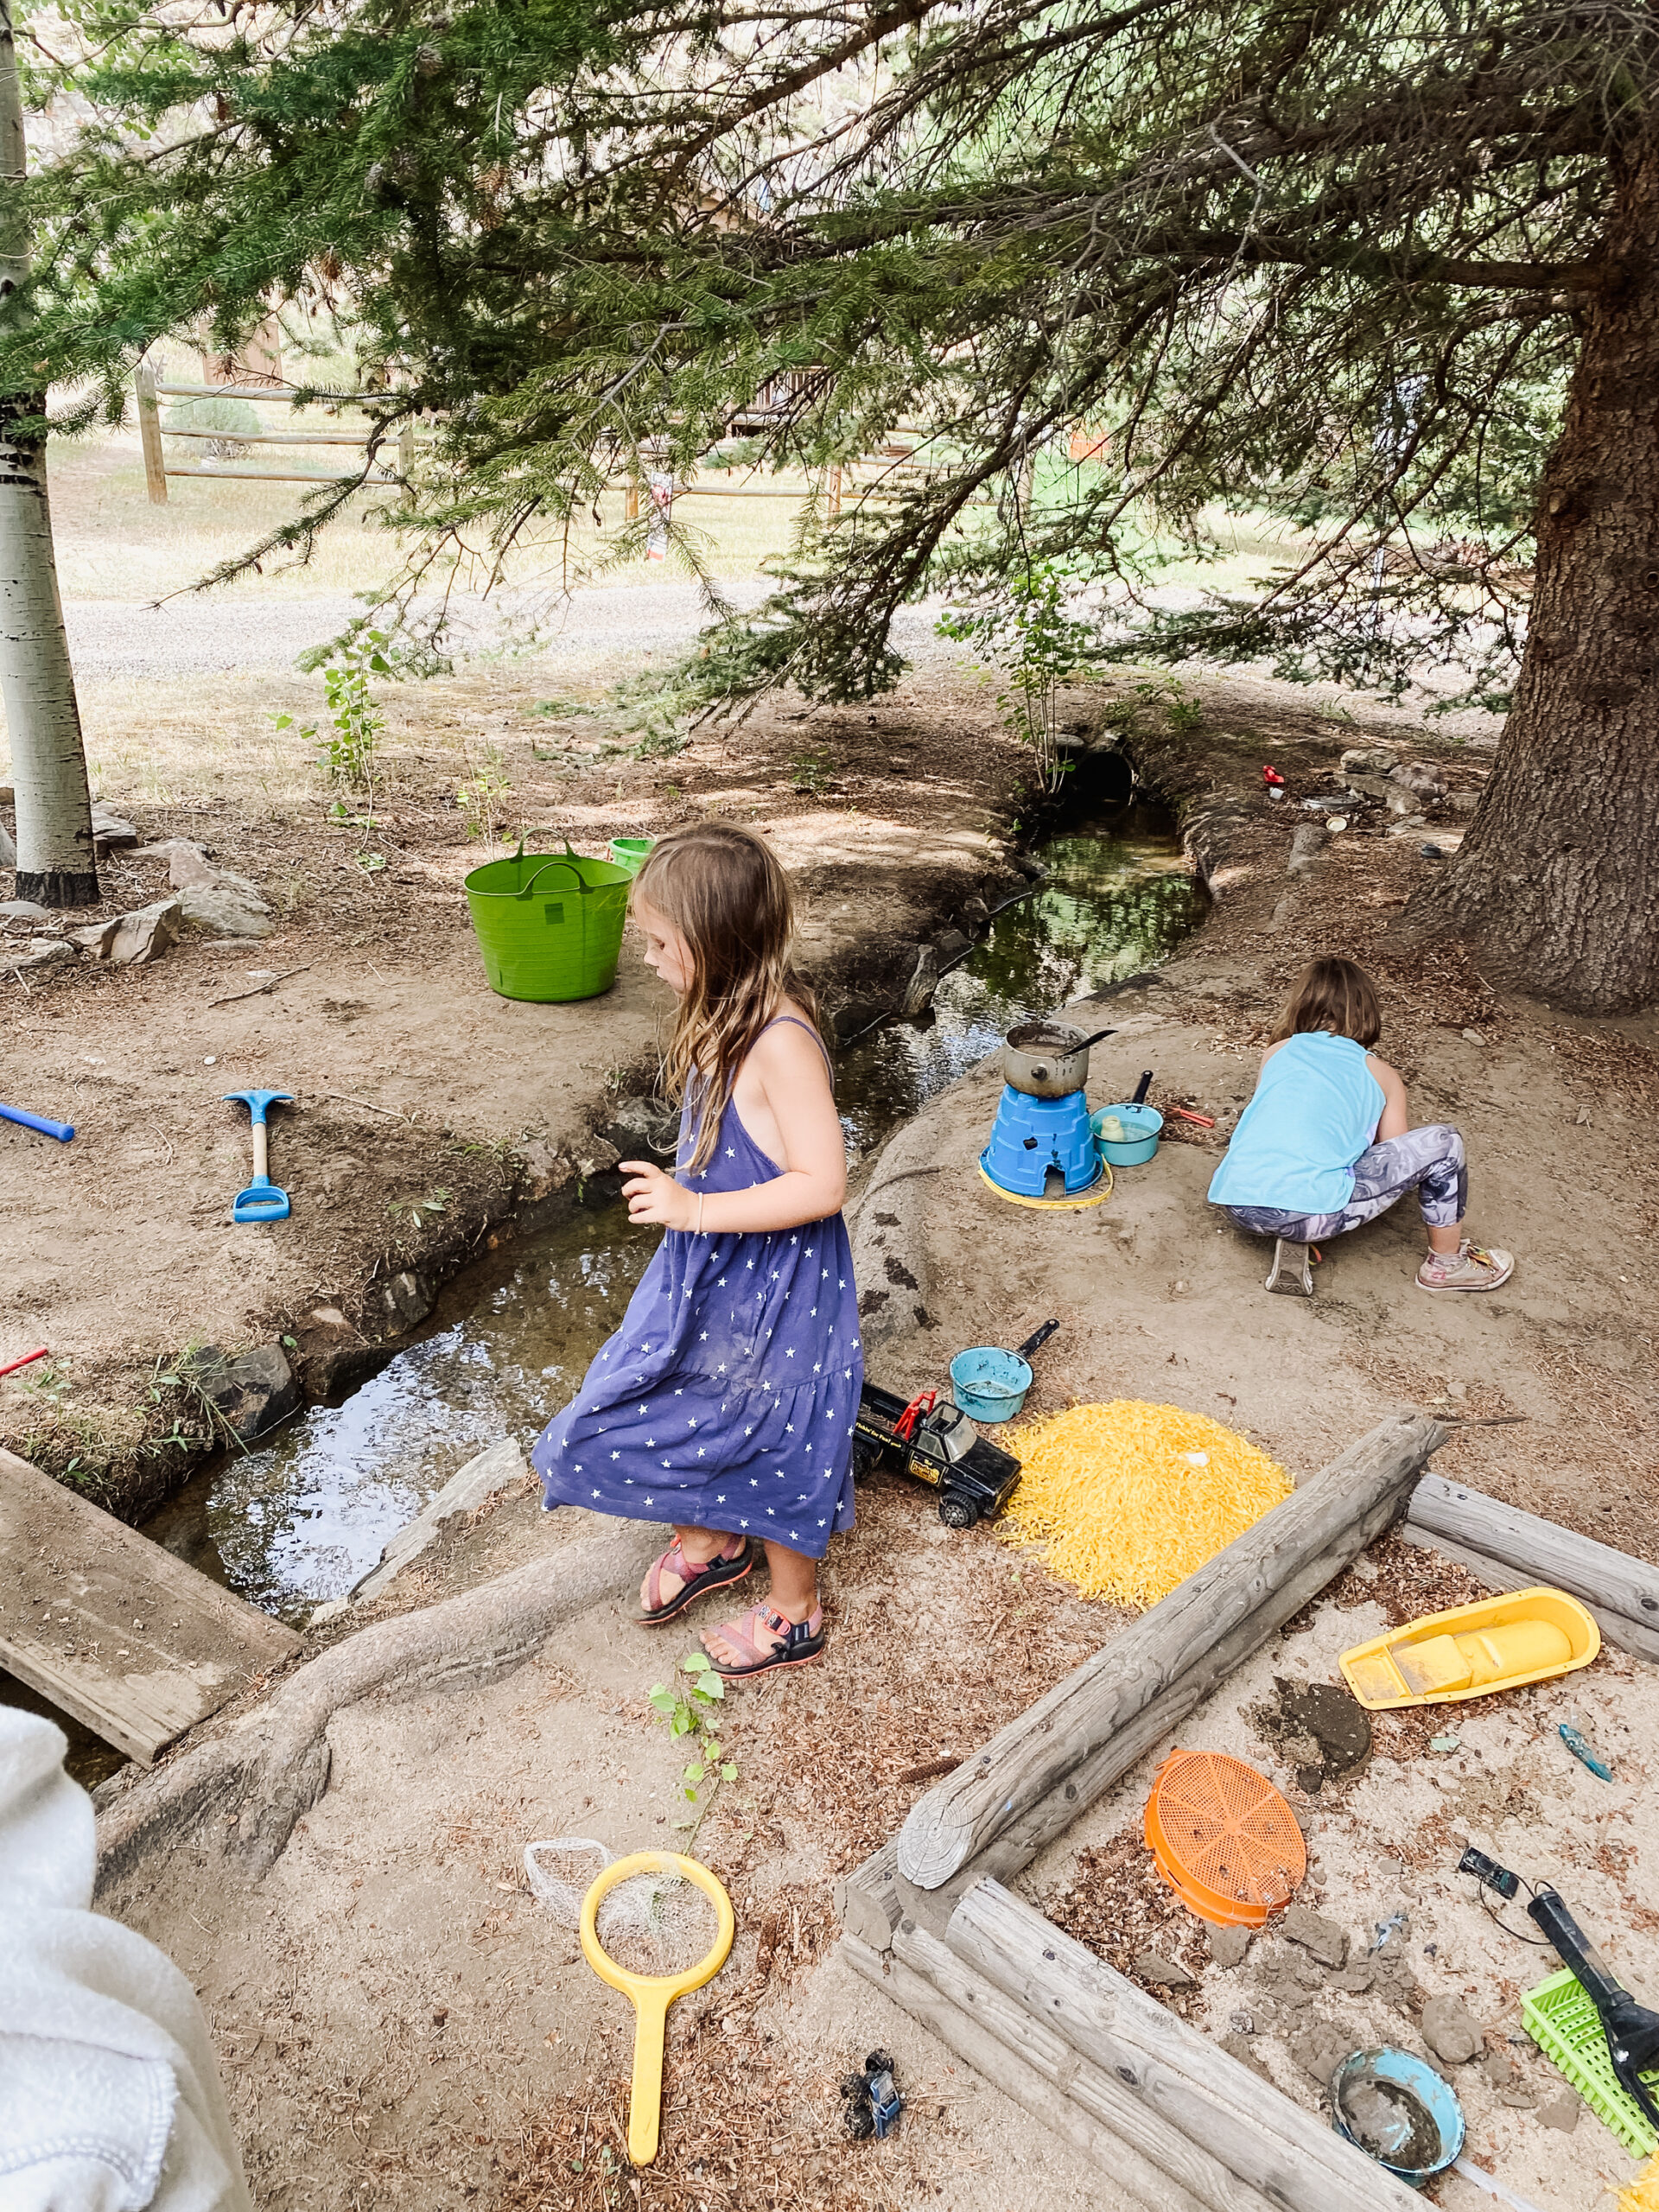 making mud pies in the ditch. #camping #mudpies #outdoorplay